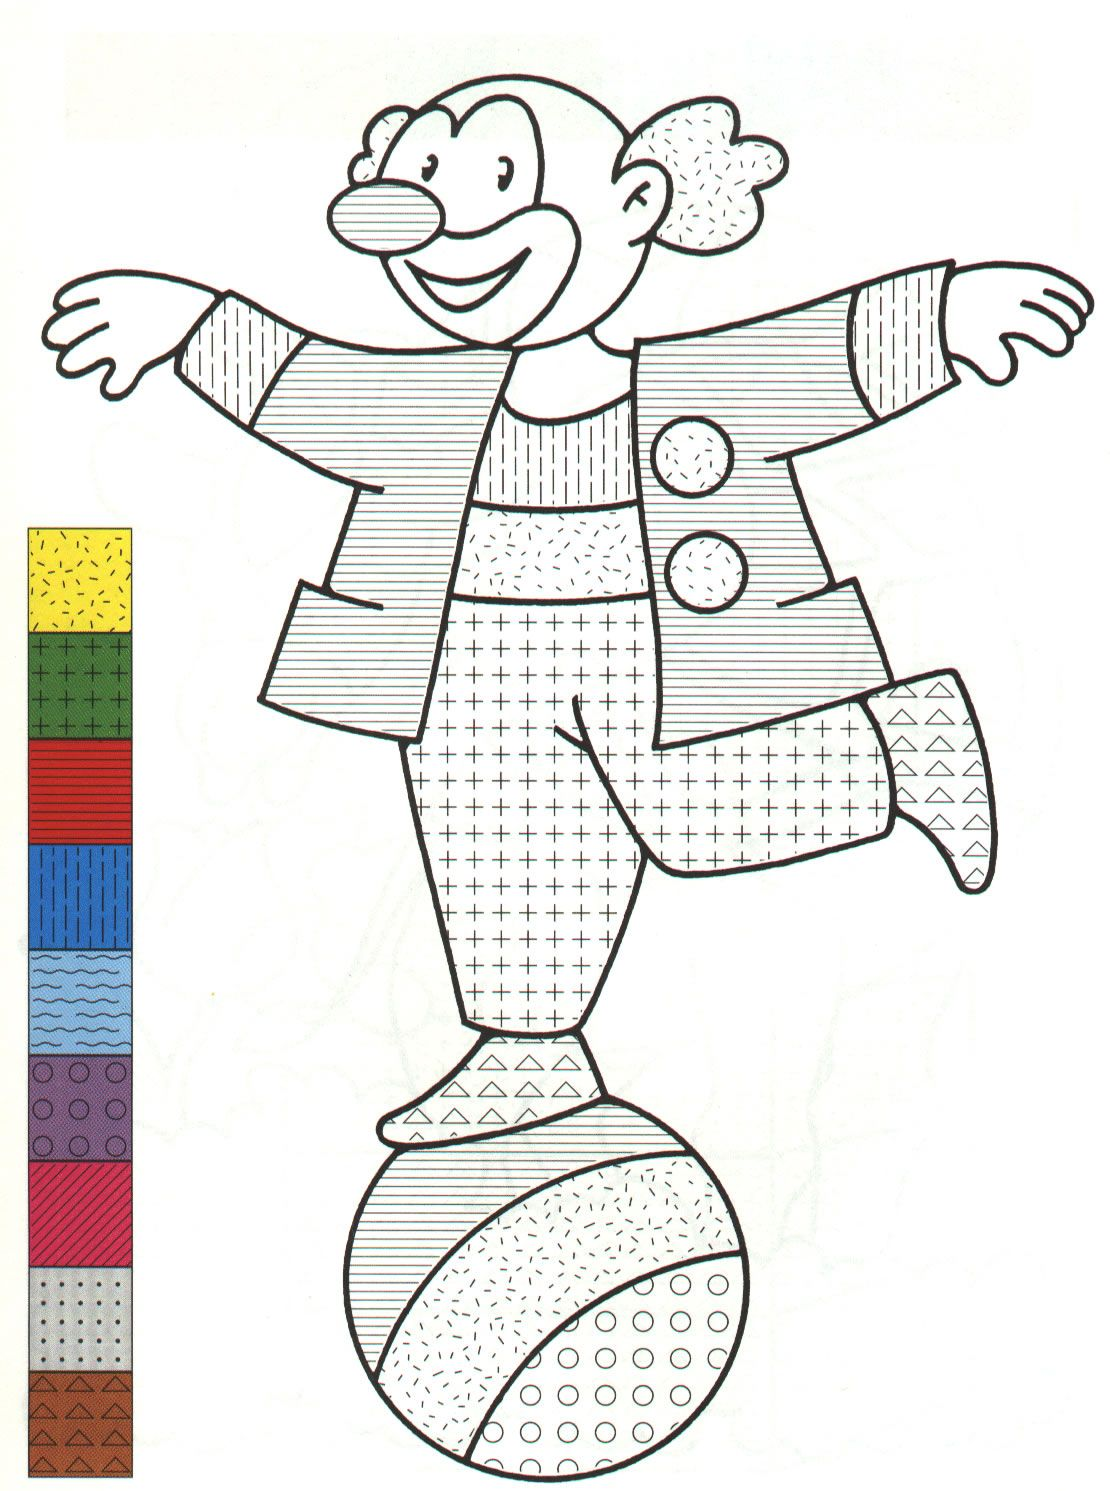 Color Pattern - 999 Coloring Pages | Color by Number for Adults and ...